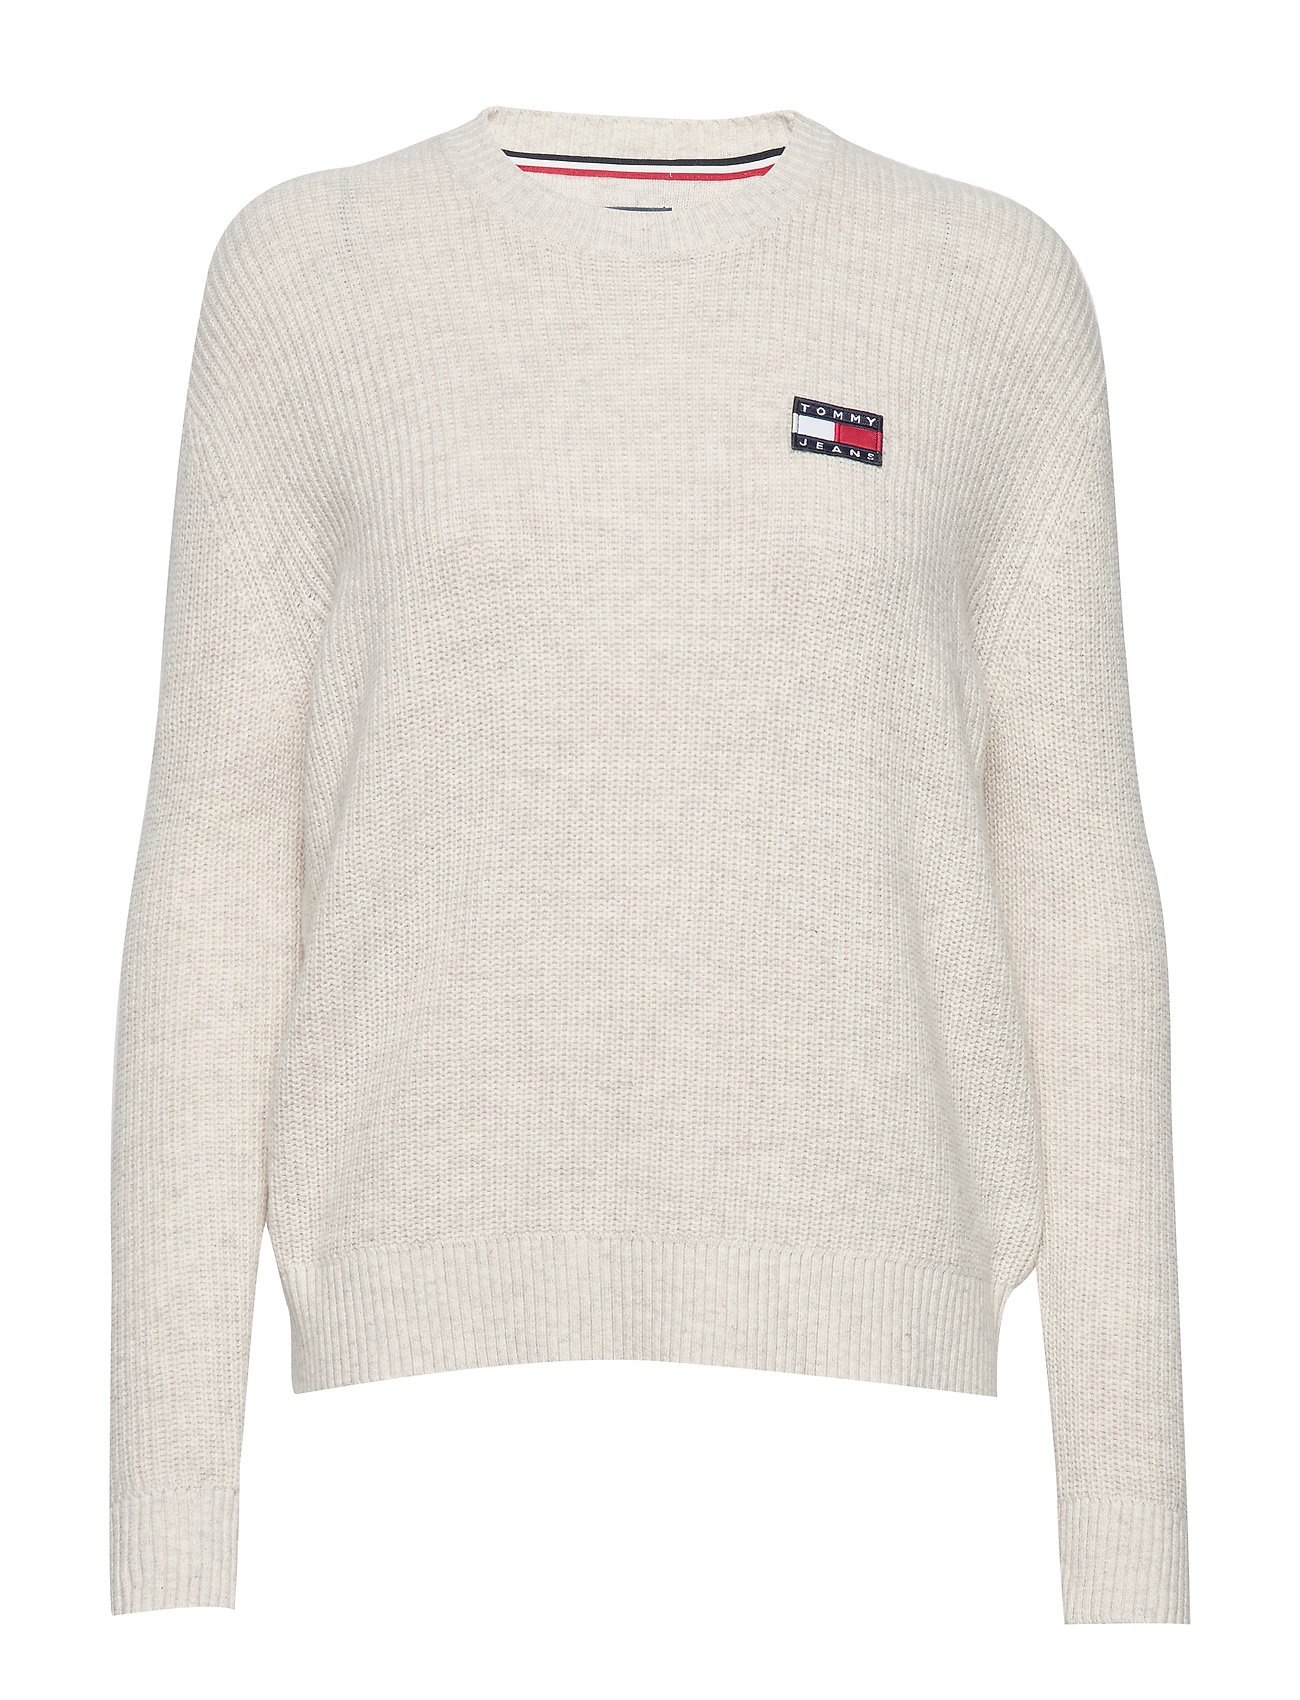 Image of Tjw Tommy Badge Sweater Strikket Trøje Creme Tommy Jeans (3285598881)